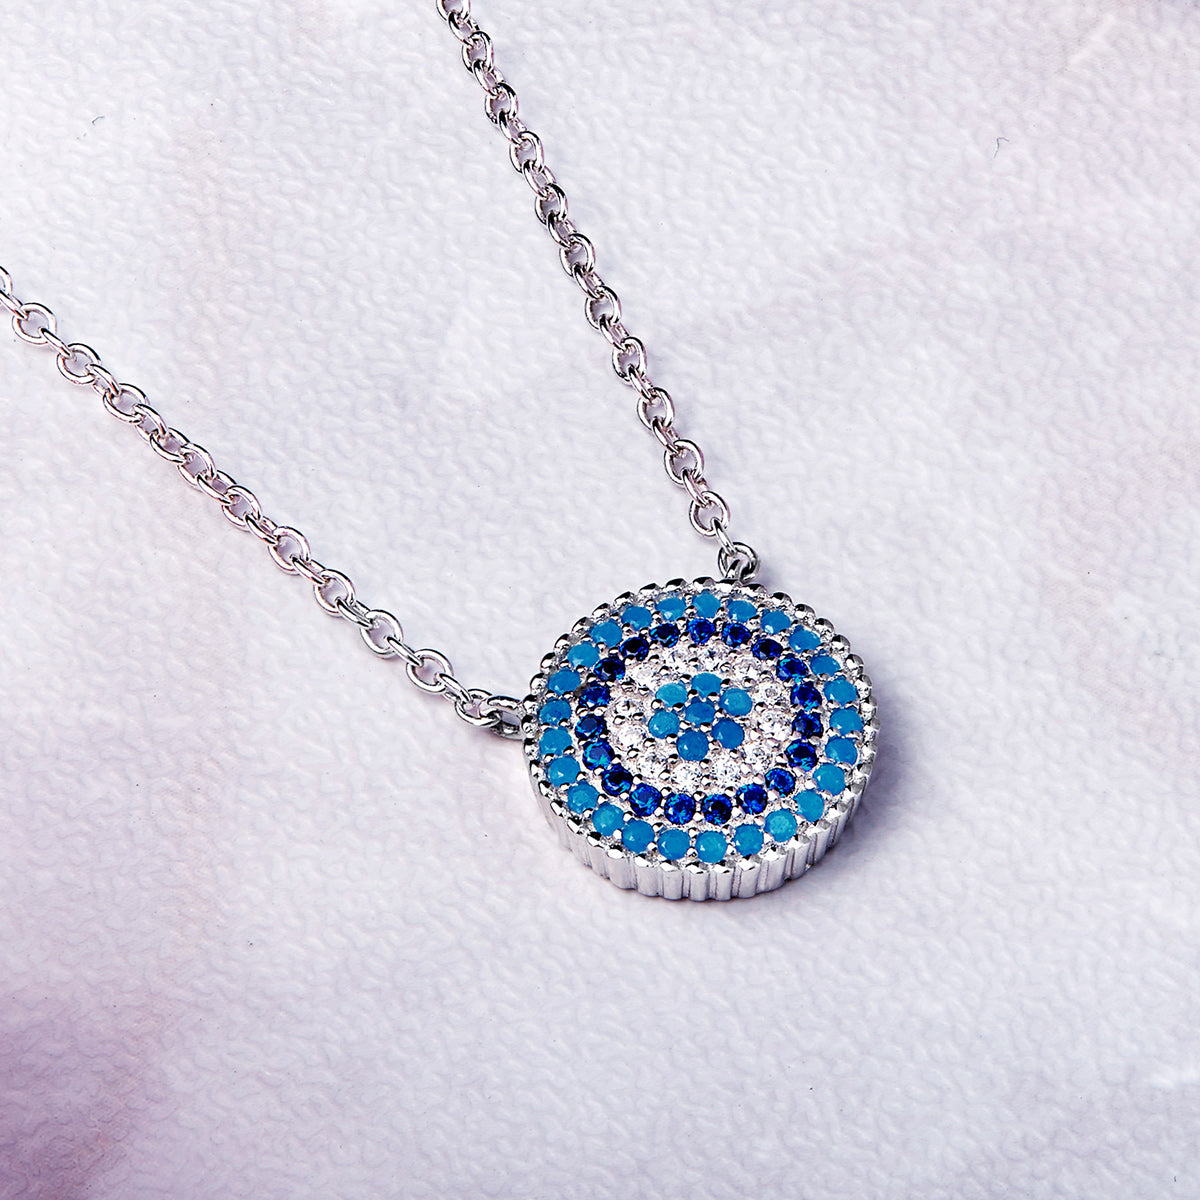 luxury com pendant details for necklace triangle studded delicate zircons mall crystal women tvc blue